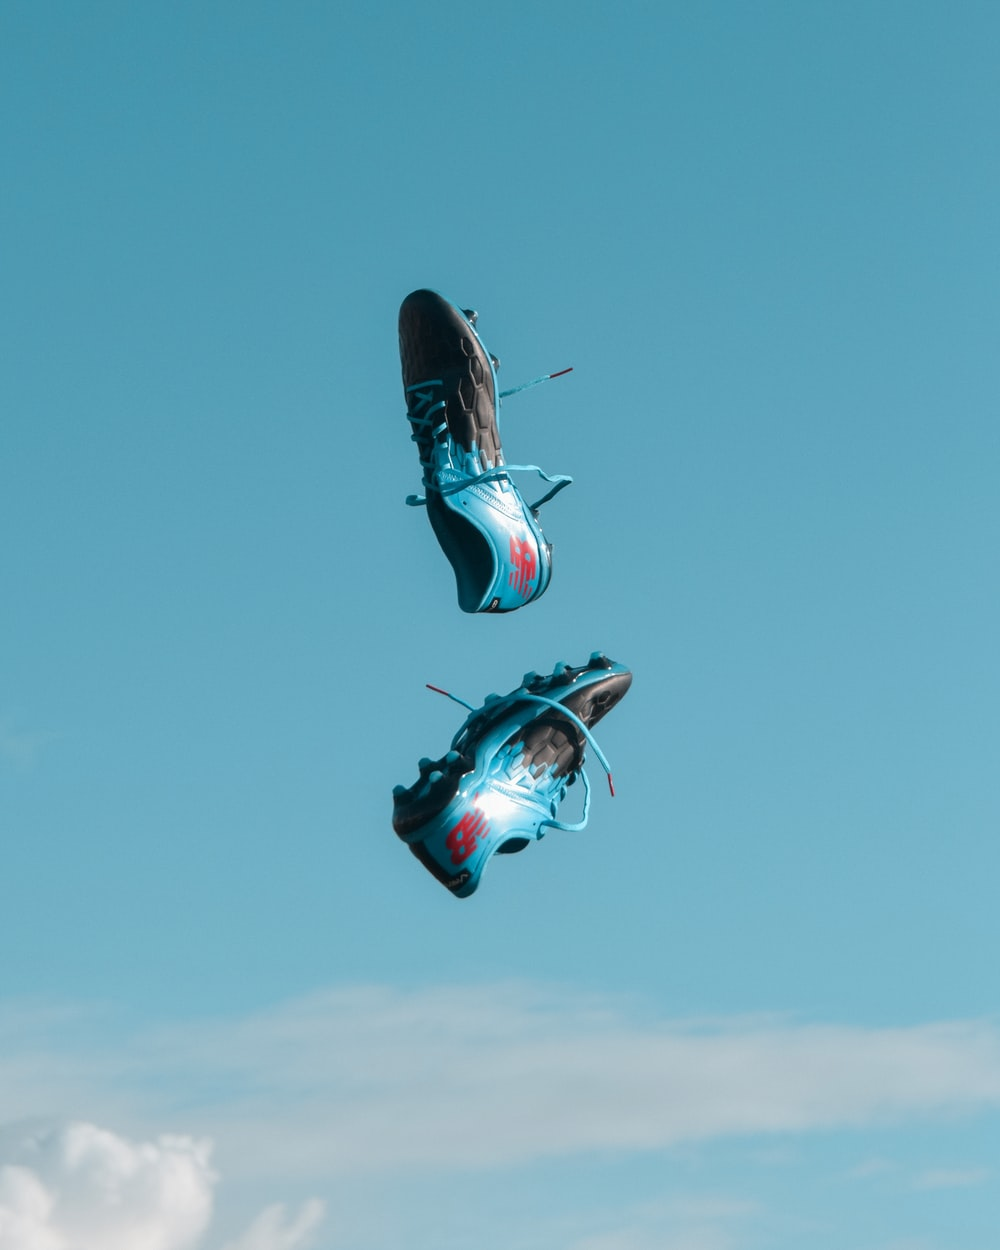 pair of blue-and-black New Balance cleats in the air under teal sky with white clouds